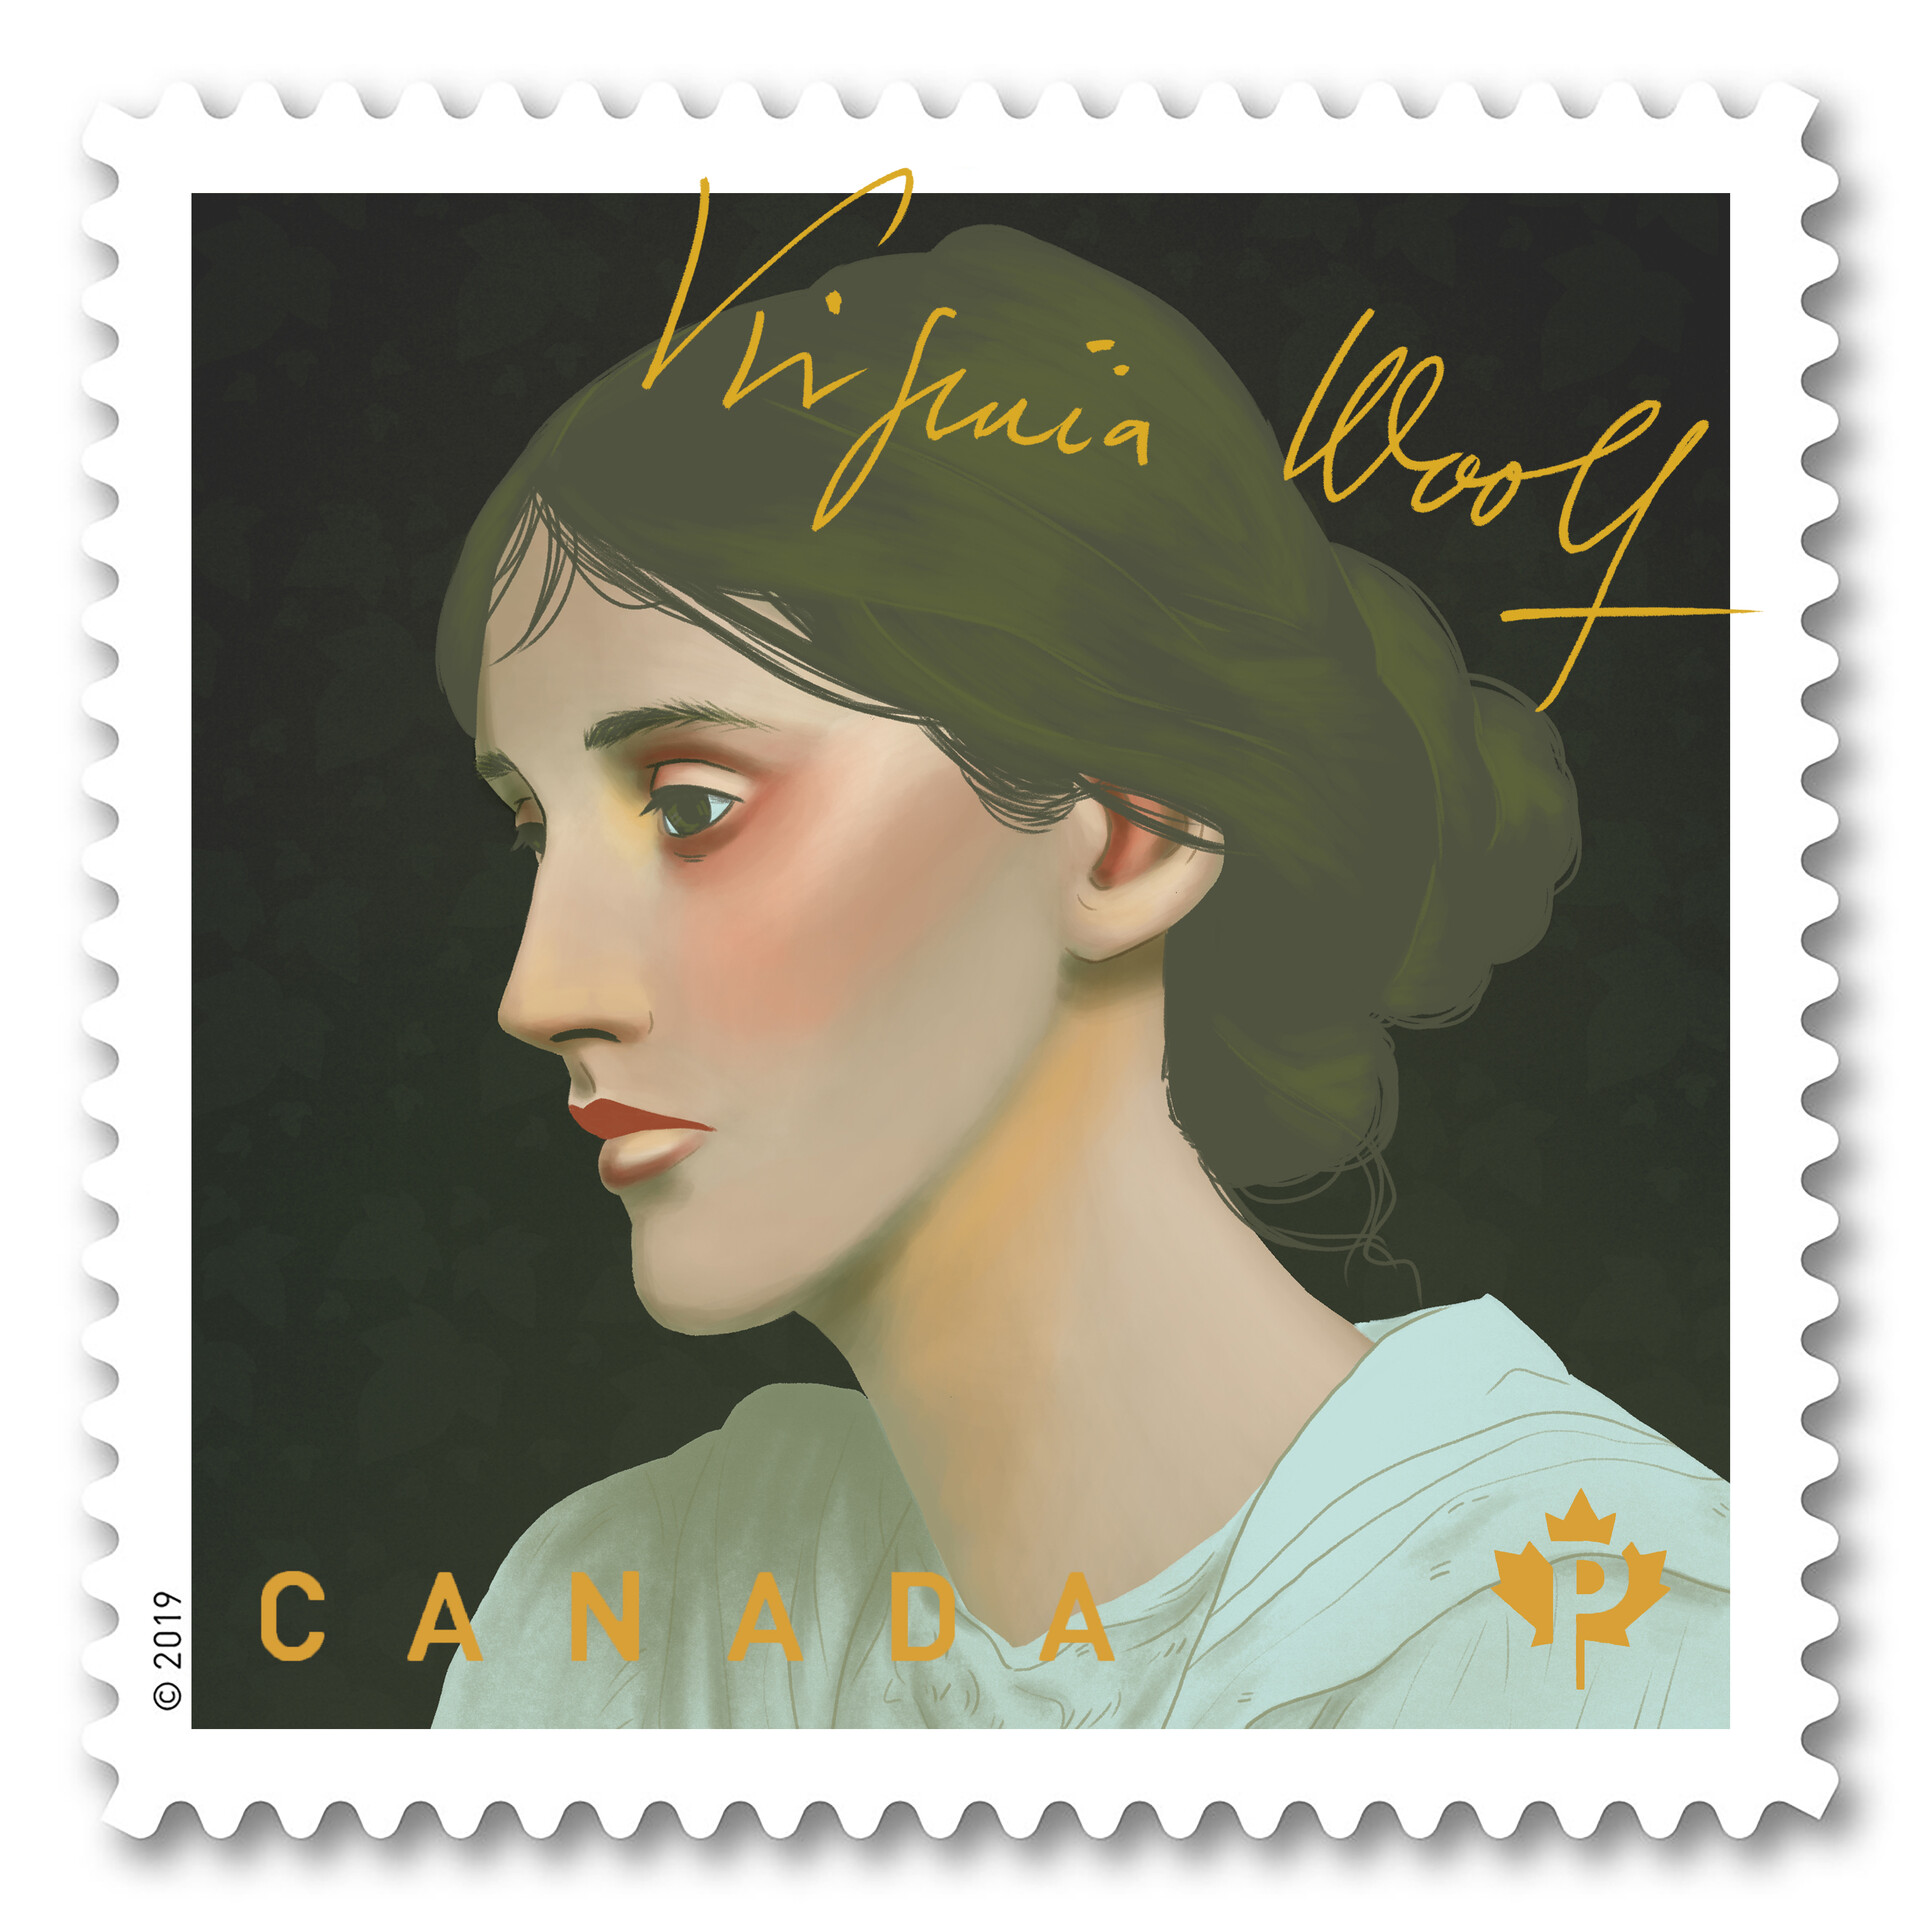 Mary roach virginia woolf square stamp